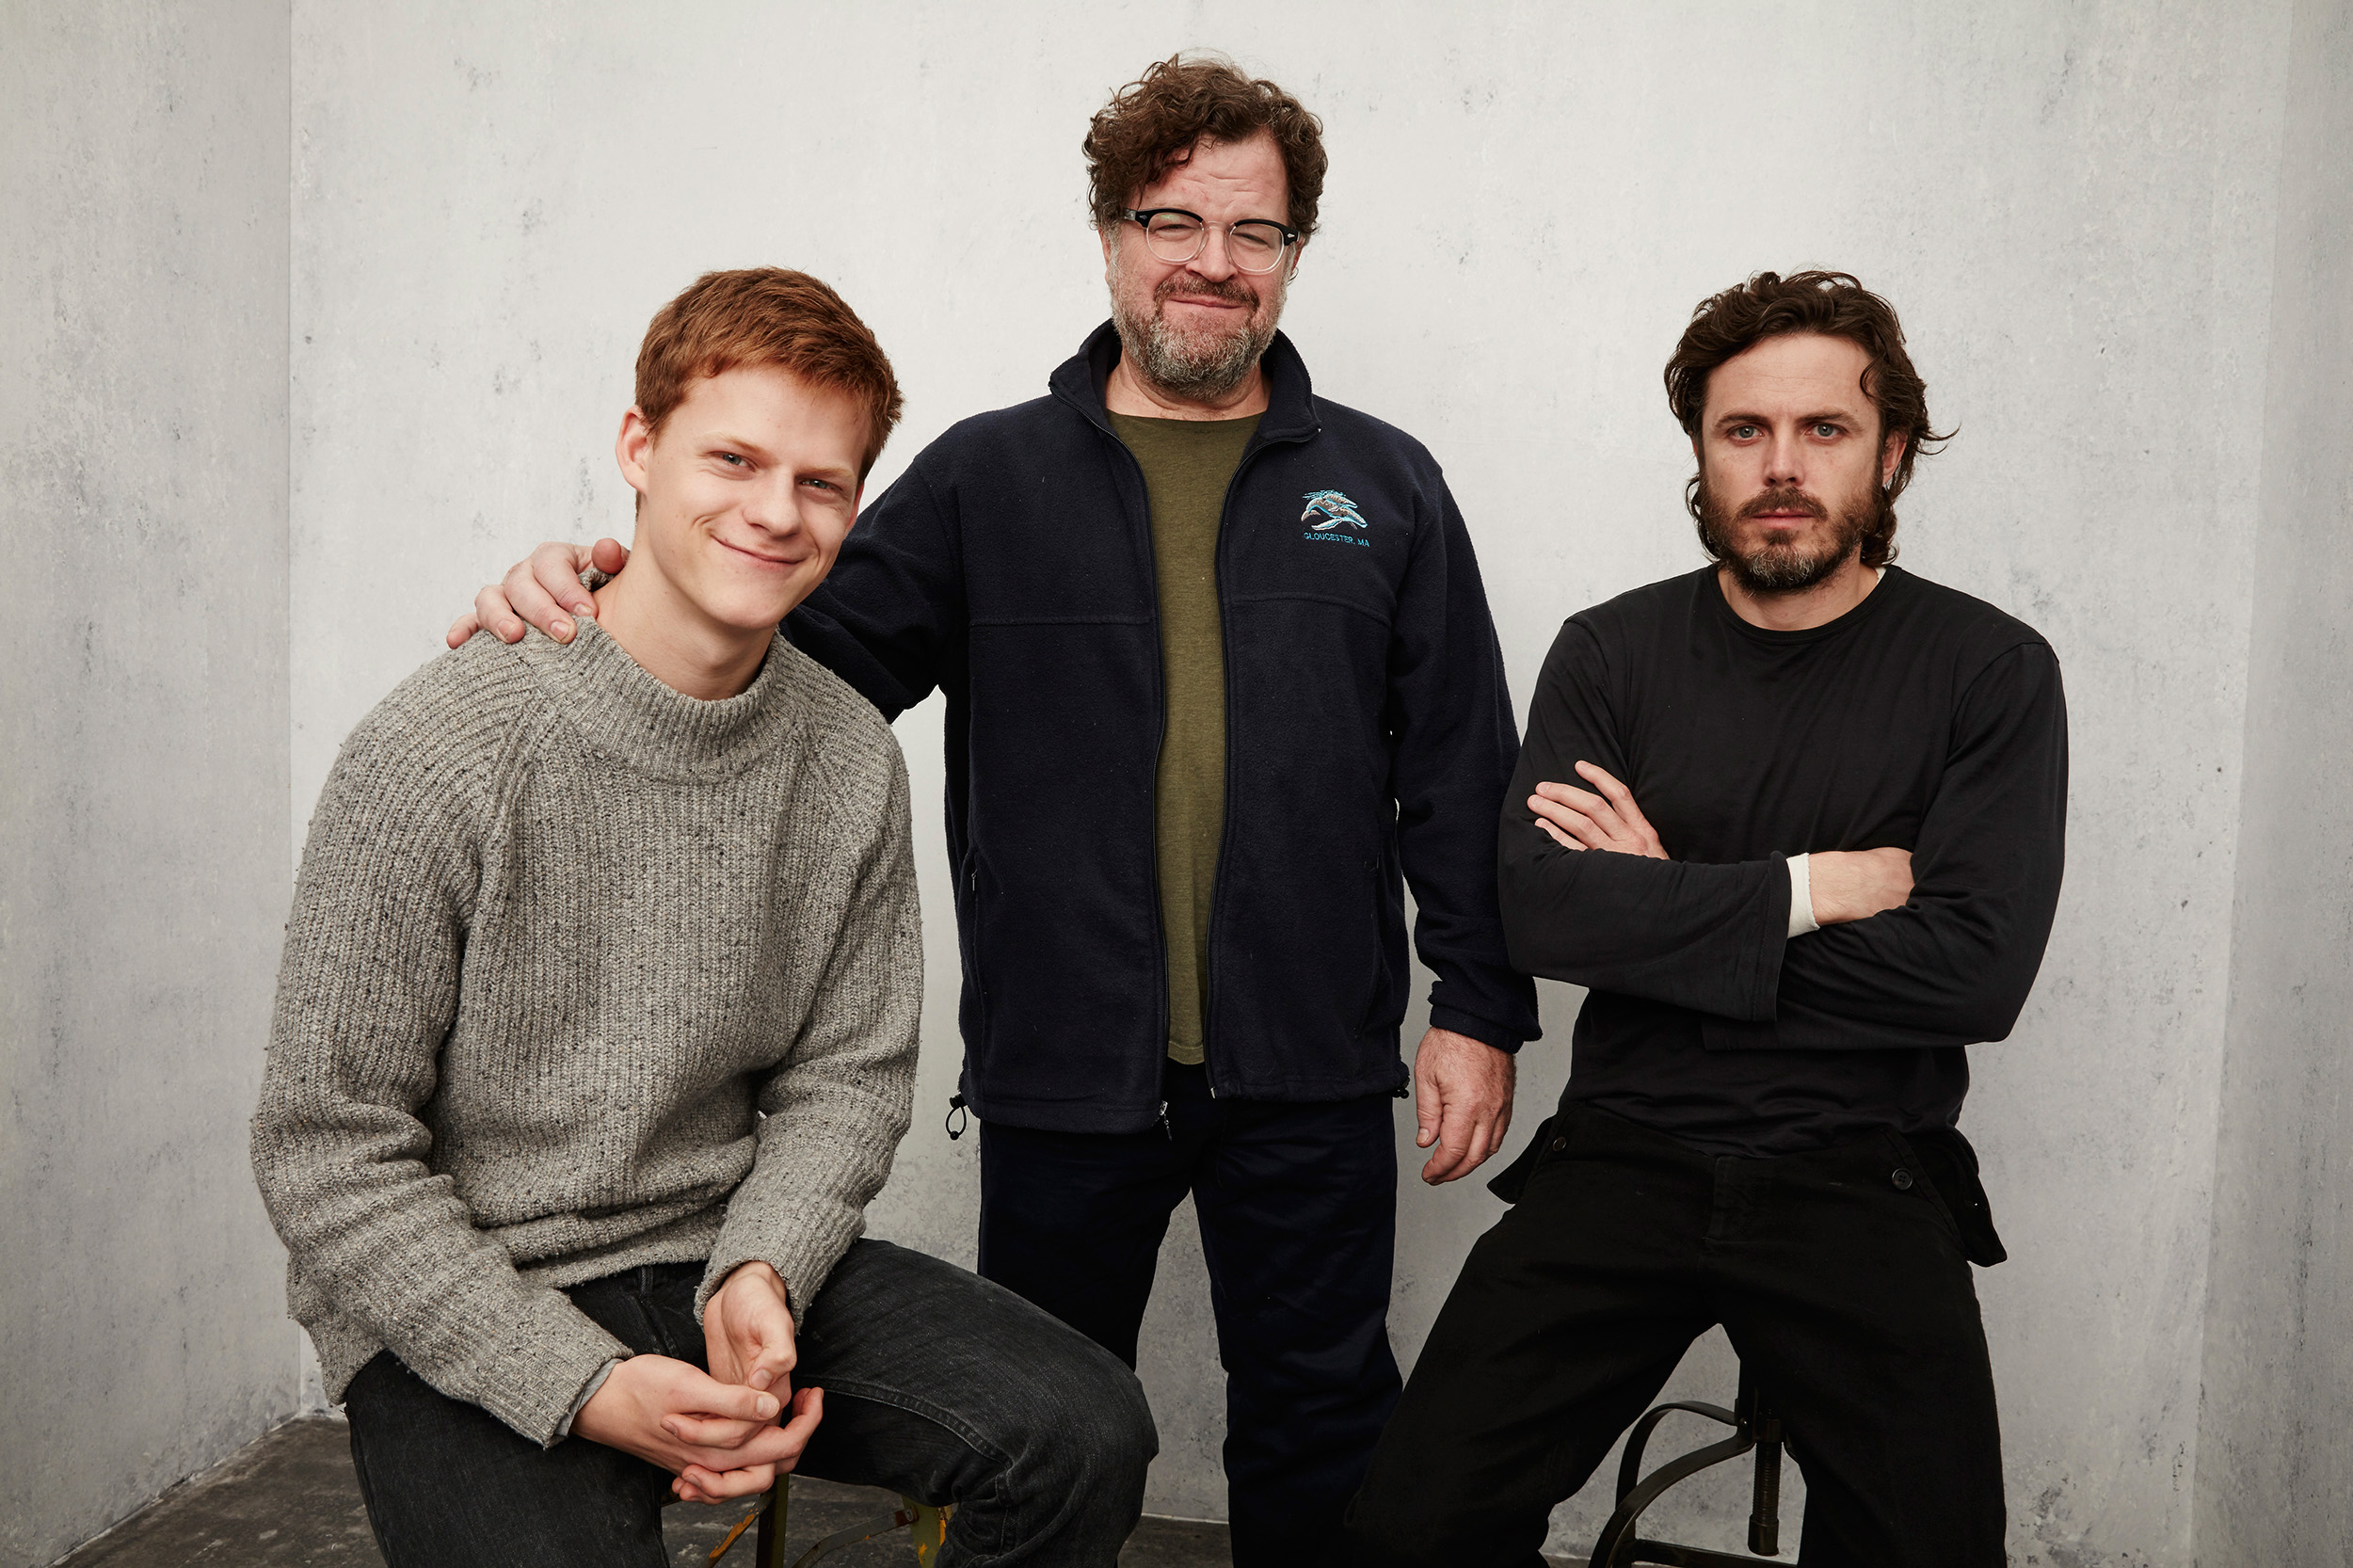 Actor Lucas Hedges, writer/director Kenneth Lonergan and actor Casey Affleck from  Manchester by the Sea  at the Getty Images Portrait Studio in Park City, Utah on Jan. 24, 2016.